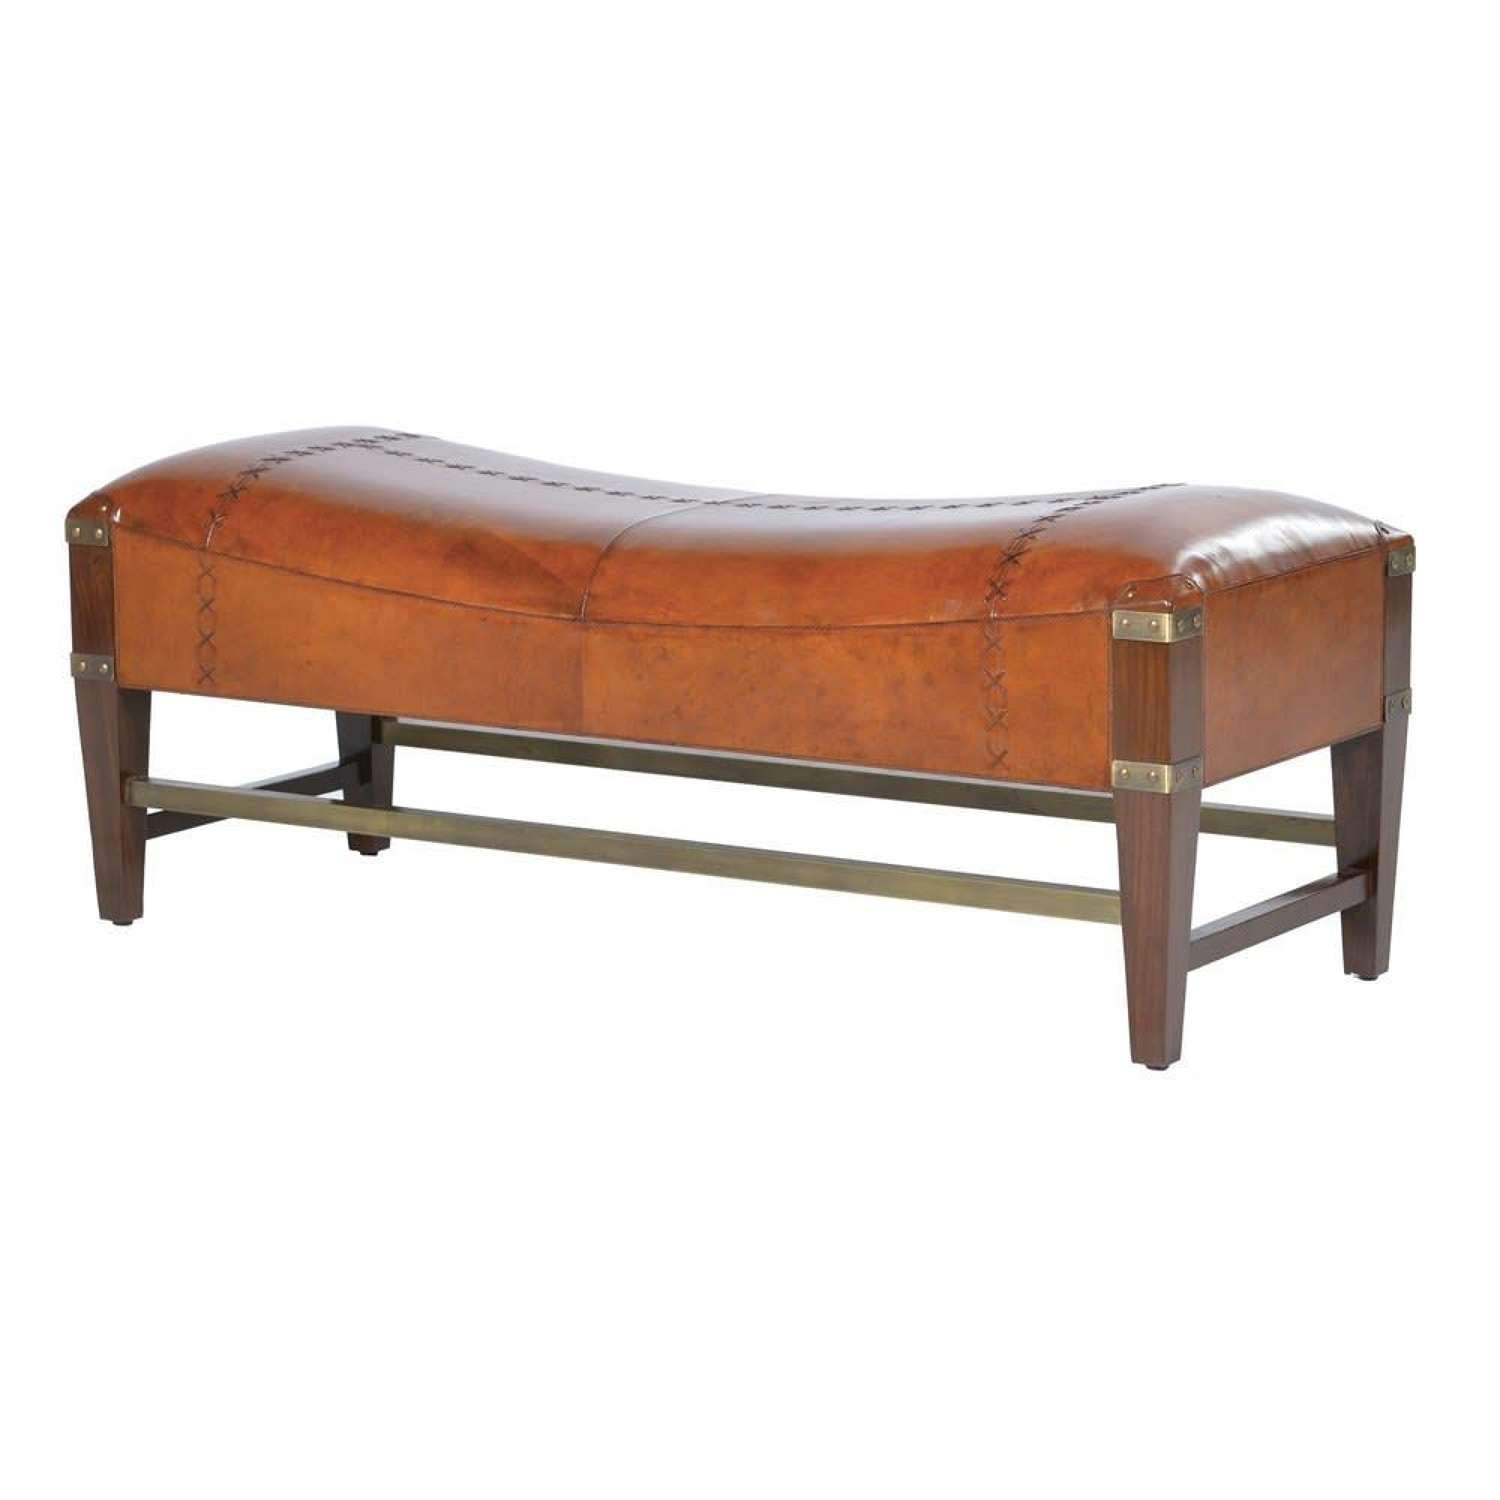 Luxury Leather Shaped Bench with Wood and Brass